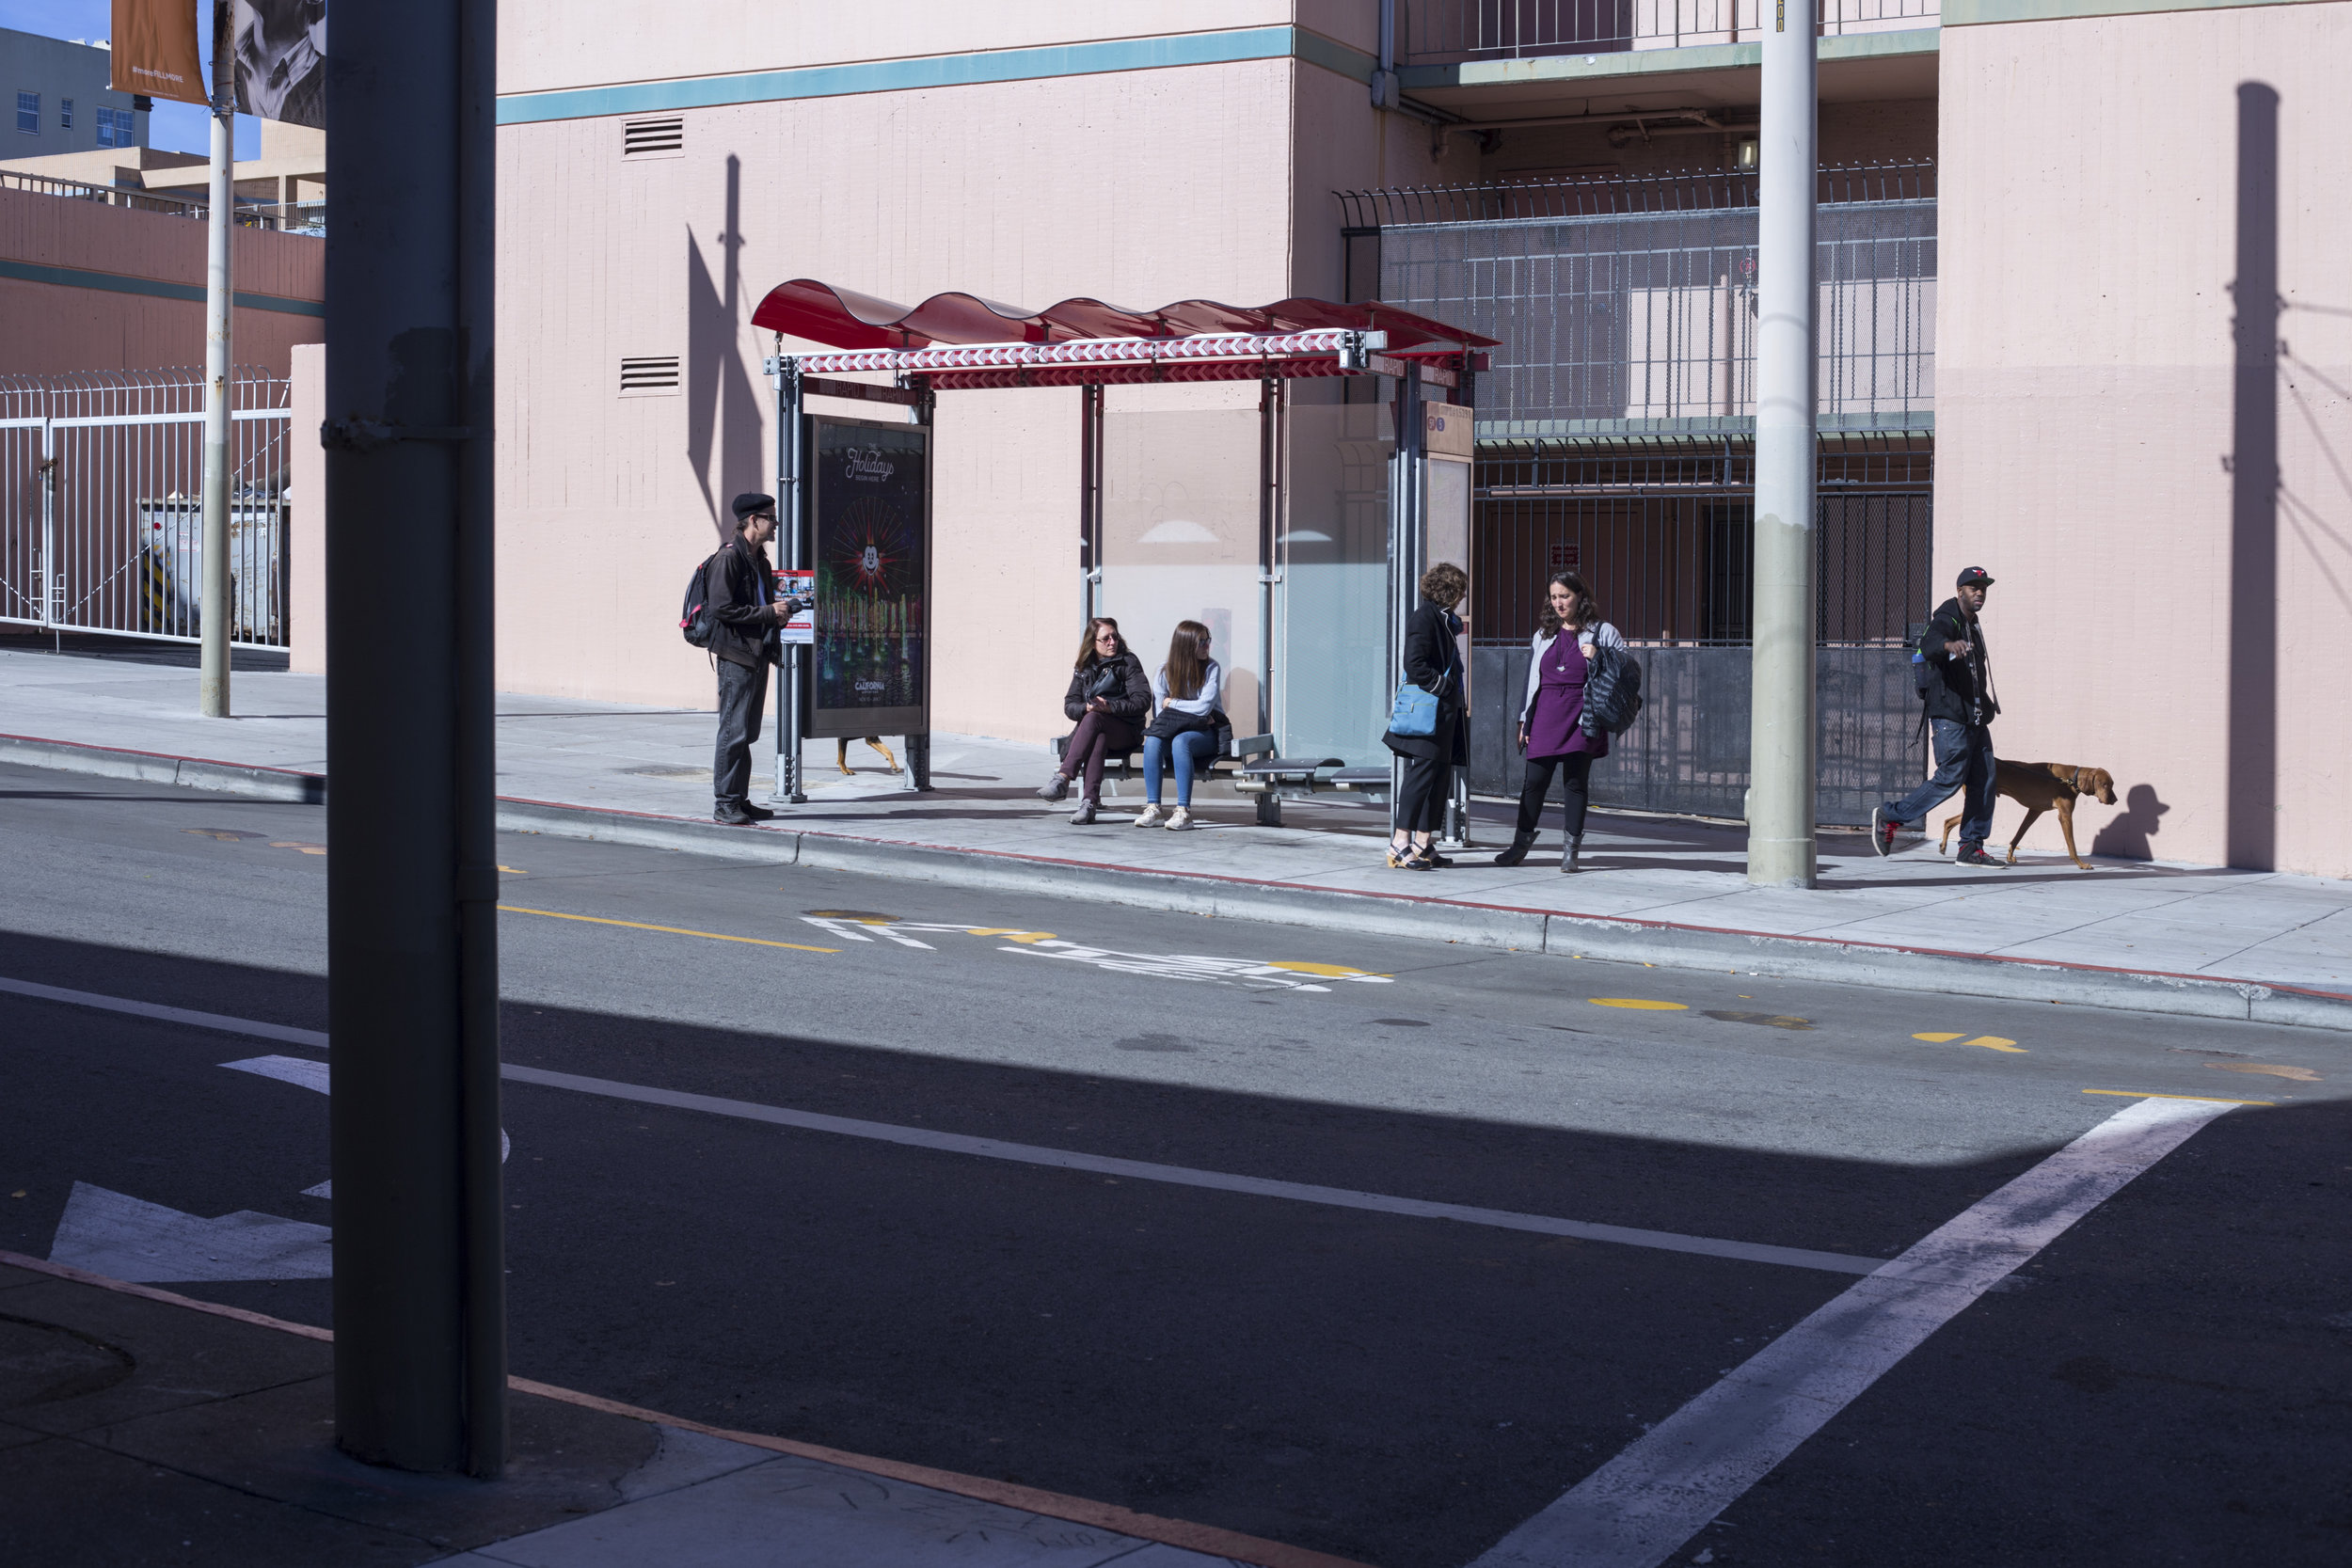 People wait for a bus in the Fillmore District of San Francisco, California., on Tuesday, November 7, 2017.